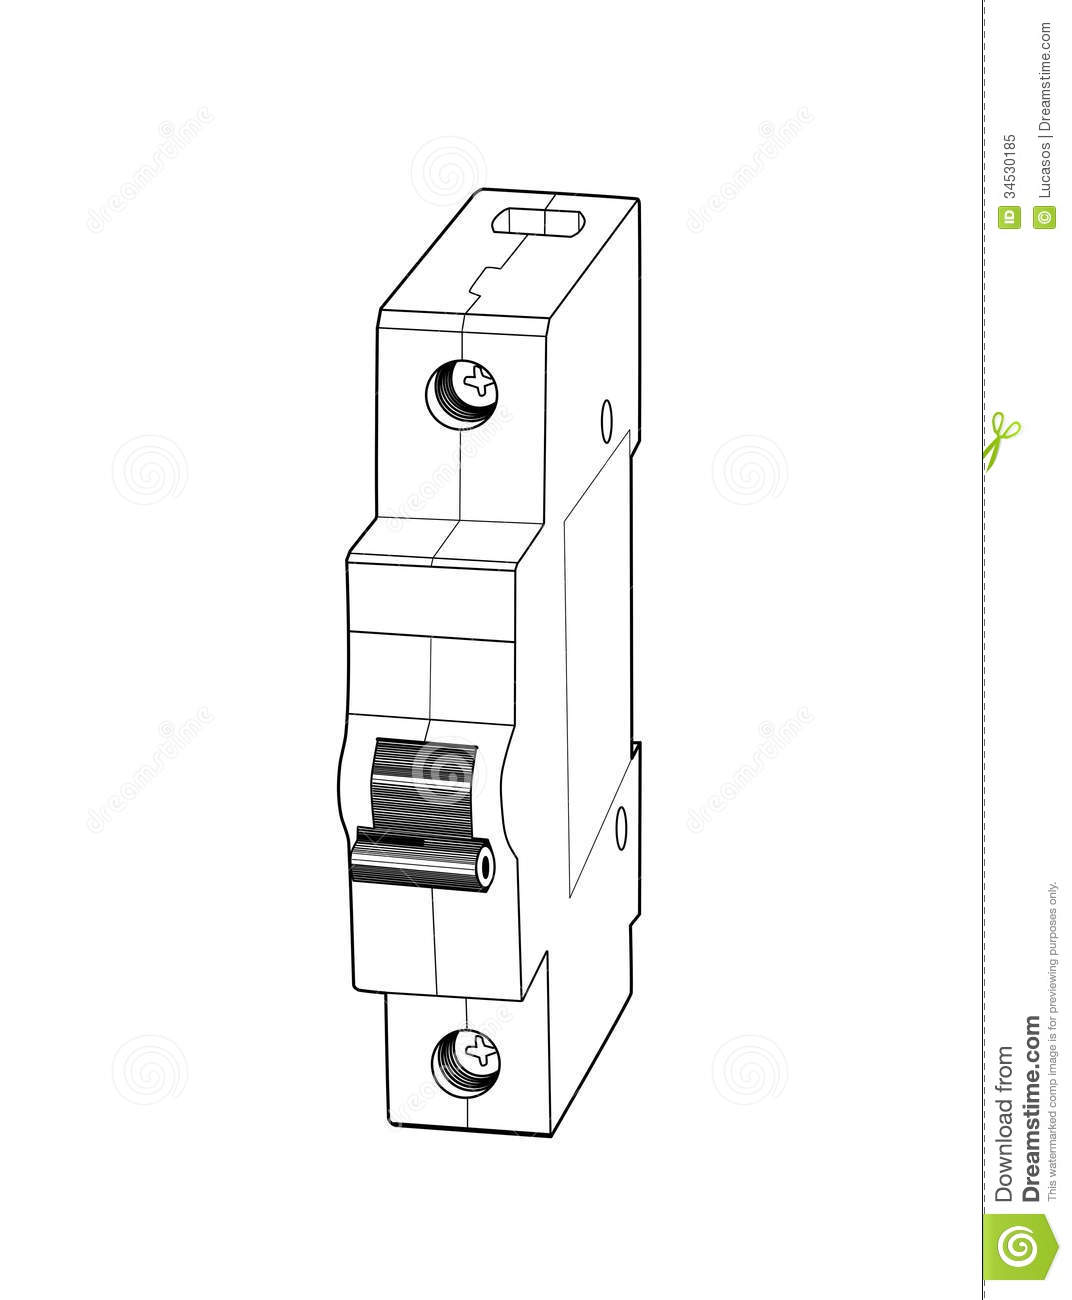 Royalty Free Stock Photo Circuit Breaker Isolated White Background Vector Illustration Image34530185 besides ZMxbbu furthermore 2006 Jetta Wiring Diagram likewise 2002 Pt Cruiser Radio Wiring Diagram furthermore 2006 Gmc Sierra Radio Wiring Harness. on fuse box electrical